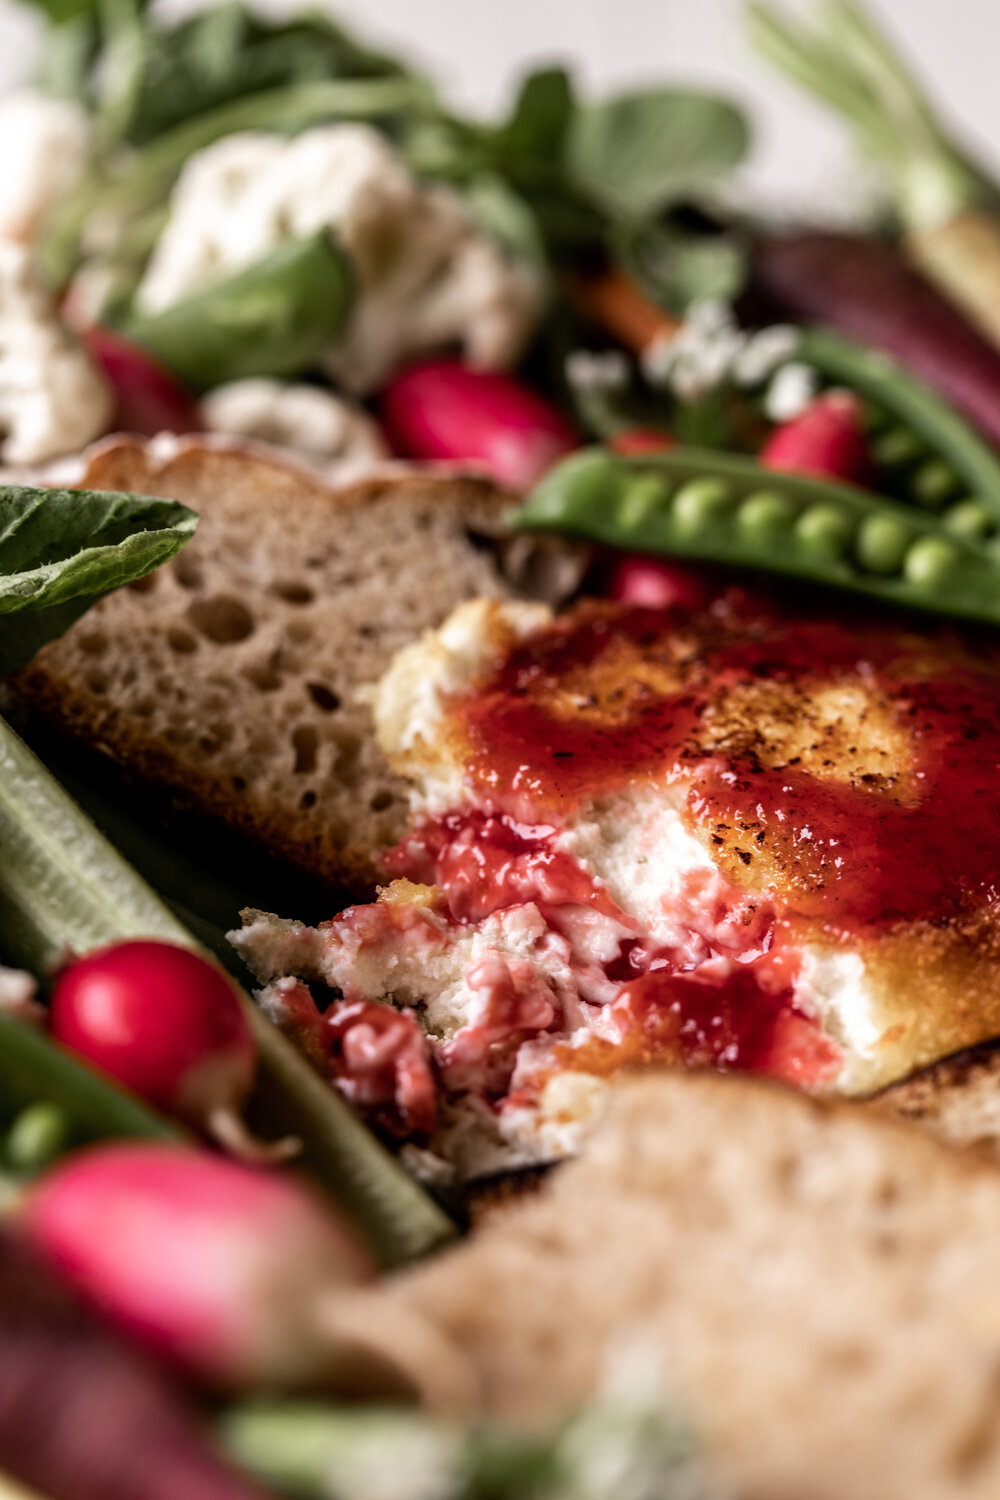 Pan-Fried Goat Cheese with Hot Raspberry Honey-26.jpg